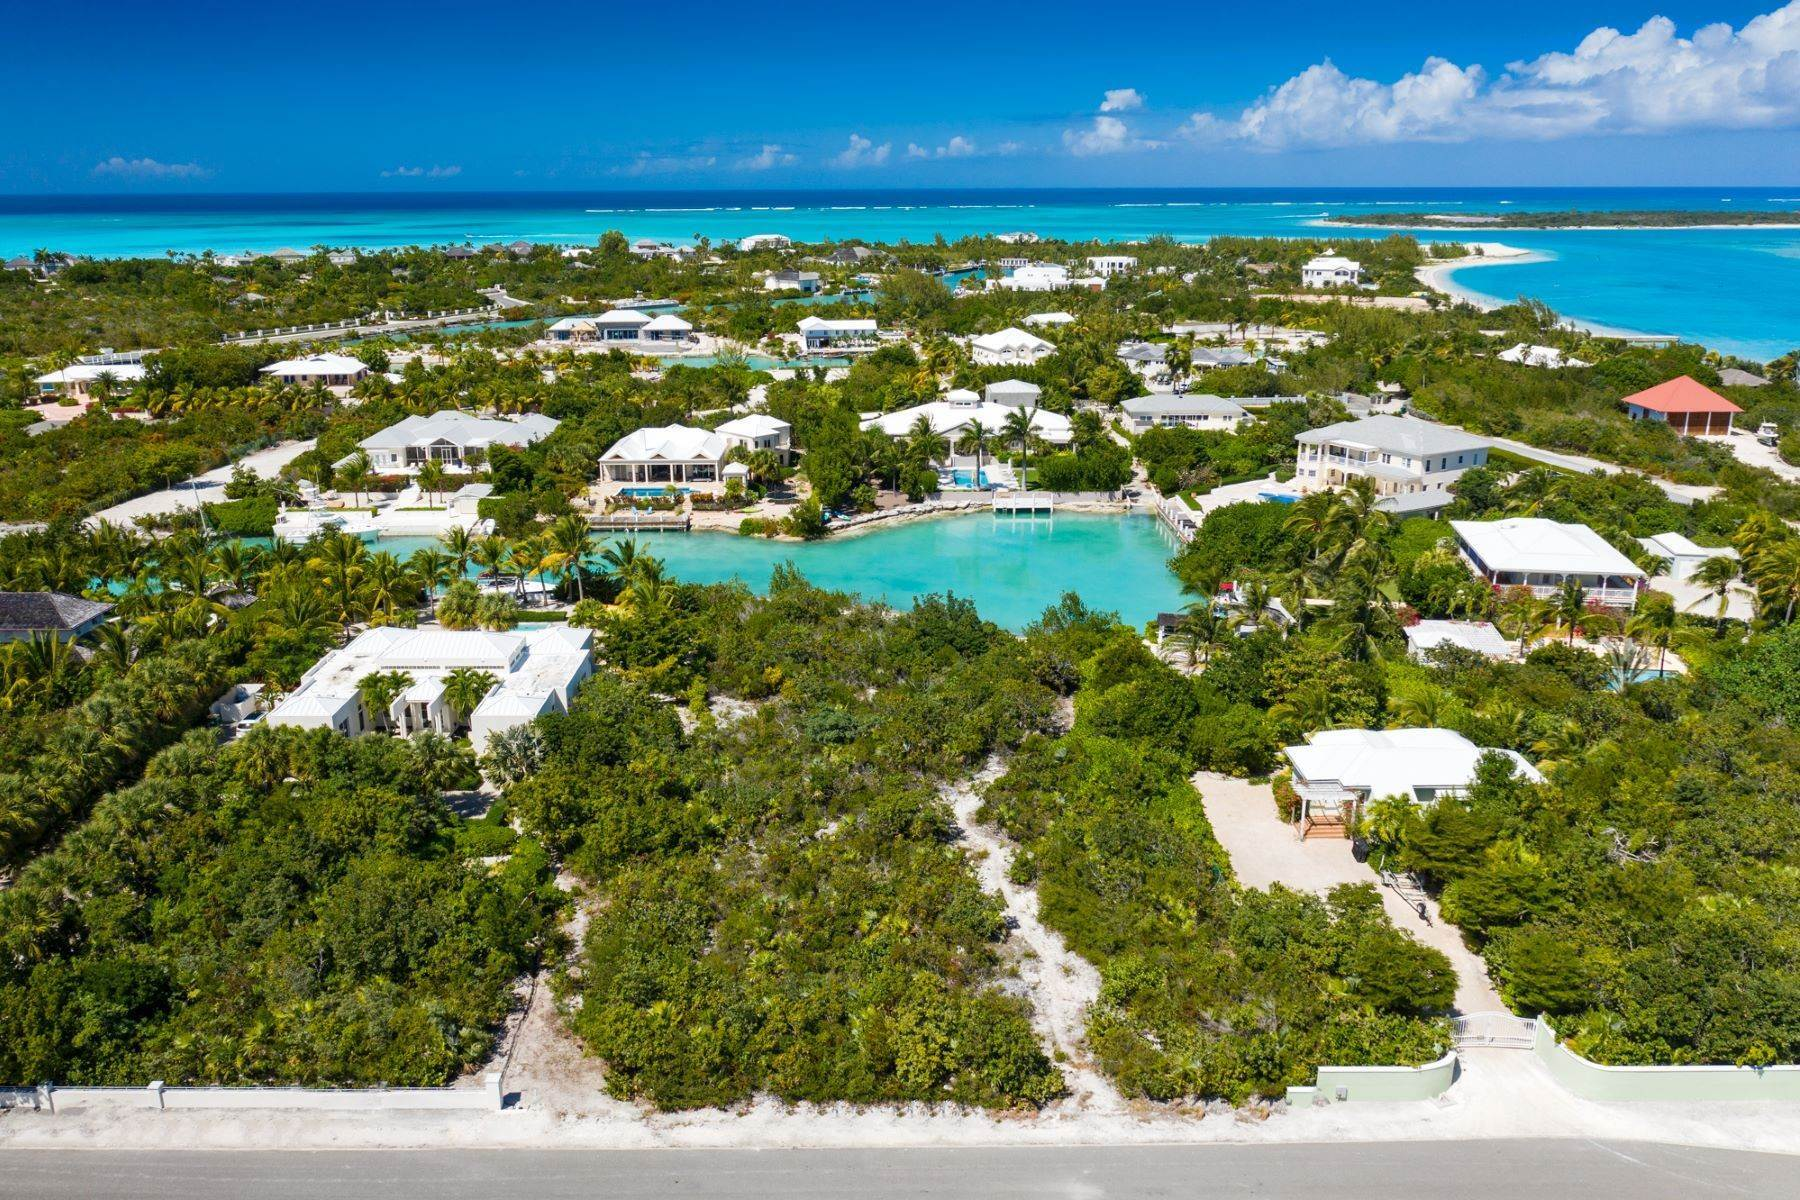 Land for Sale at Nina Lane Canalfront Lot Leeward, Providenciales Turks And Caicos Islands